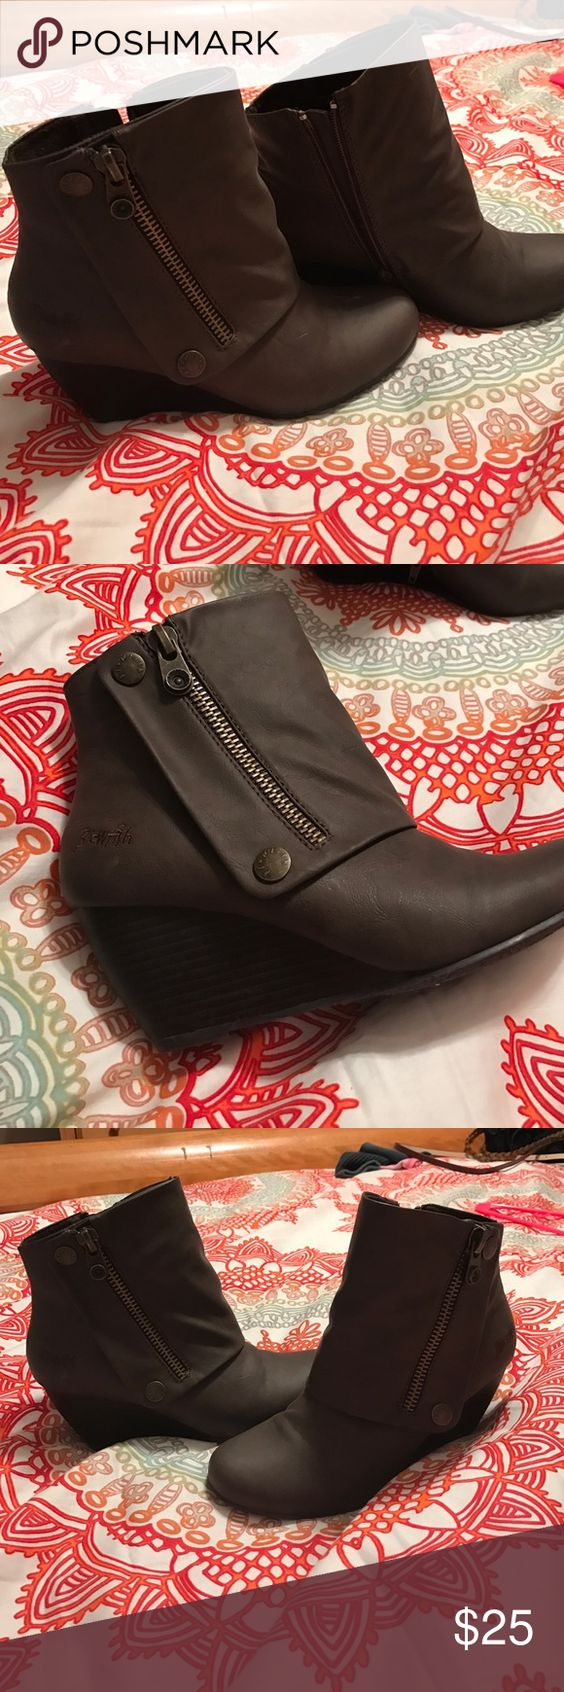 Blowfish Brown Booties Worn once, super cute and comfortable booties. Blowfish Shoes Ankle Boots & Booties